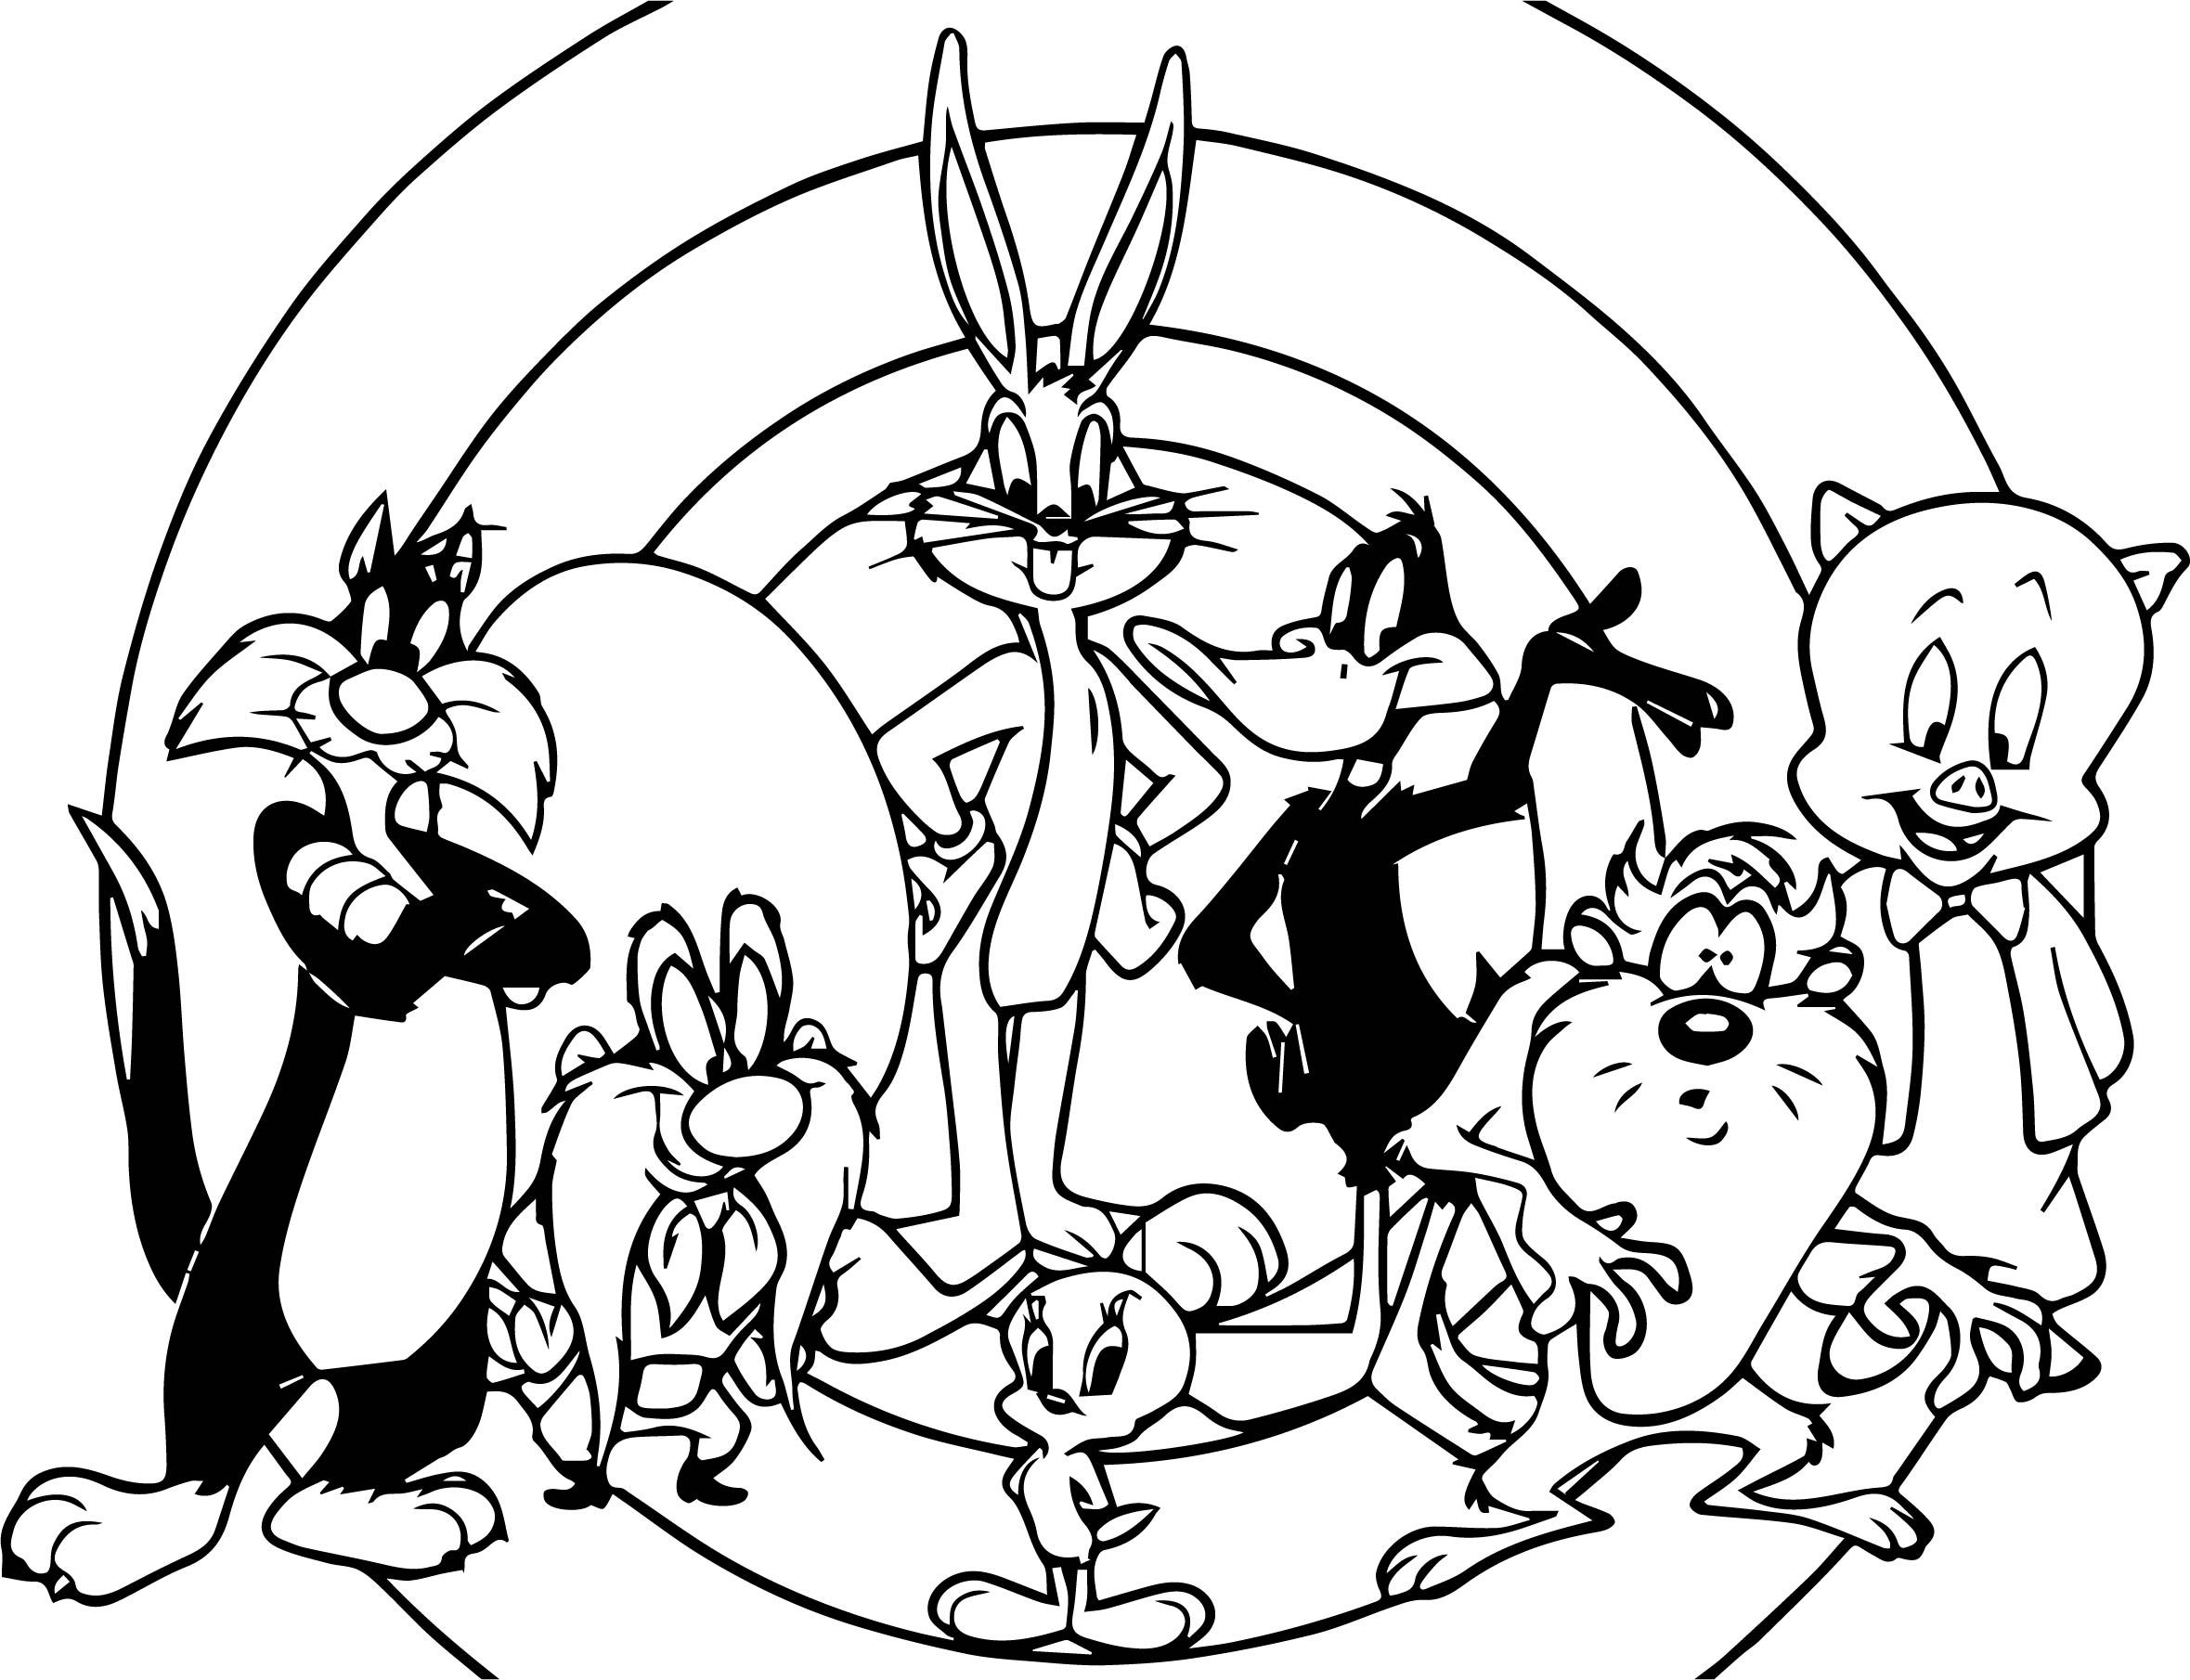 free looney tunes themed coloring pages | Looney Tunes All Characters Photo Coloring Page | Cartoon ...